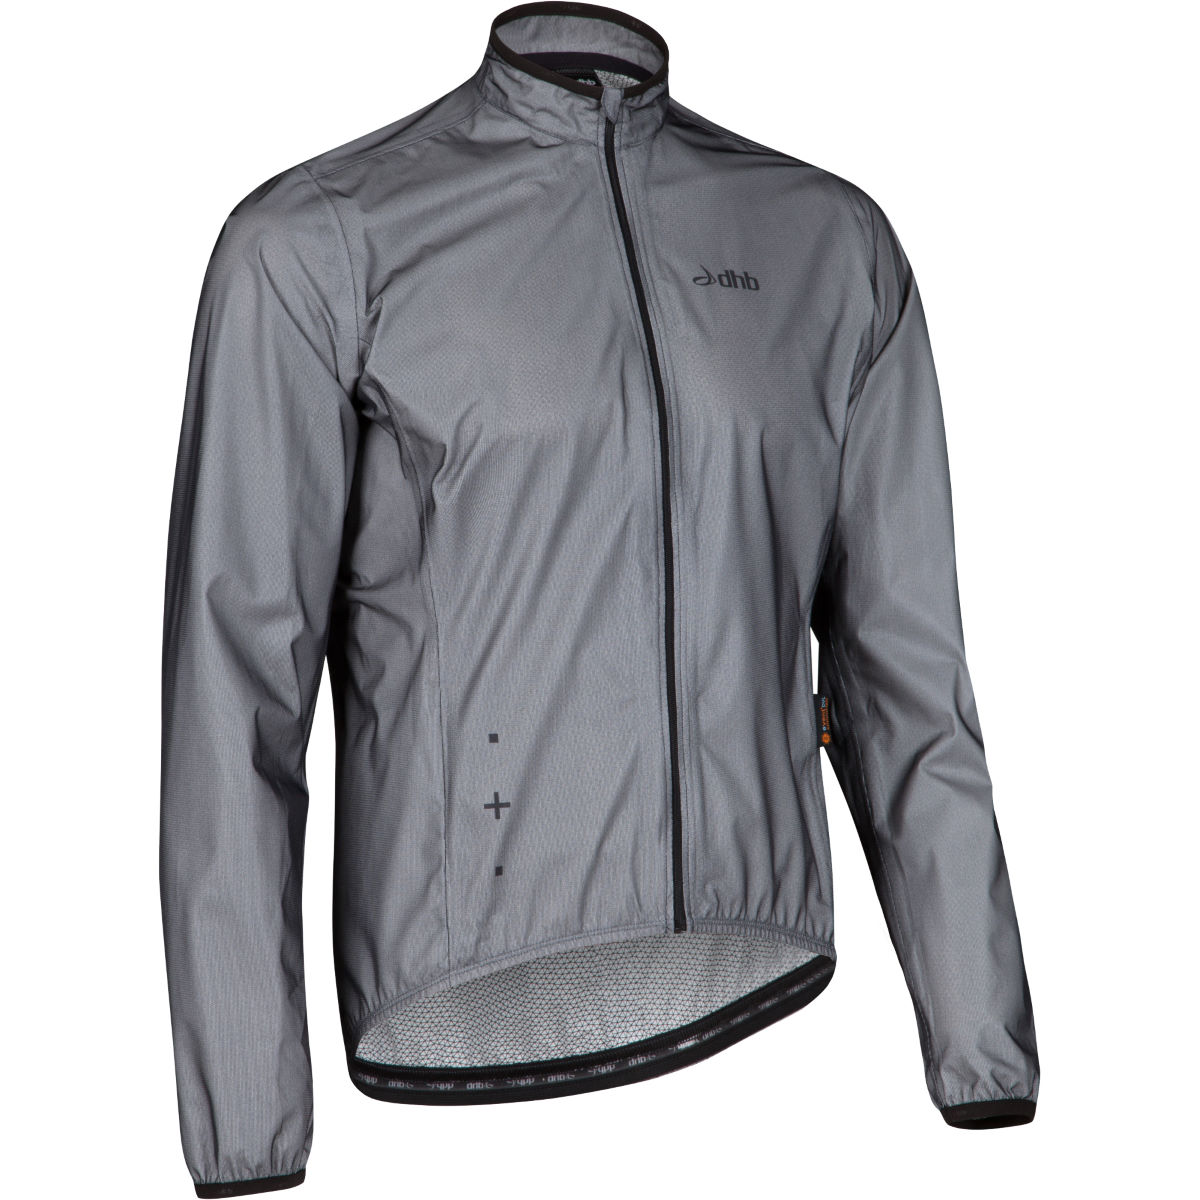 dhb ASV eVent Waterproof Jacket   Cycling Waterproof Jackets